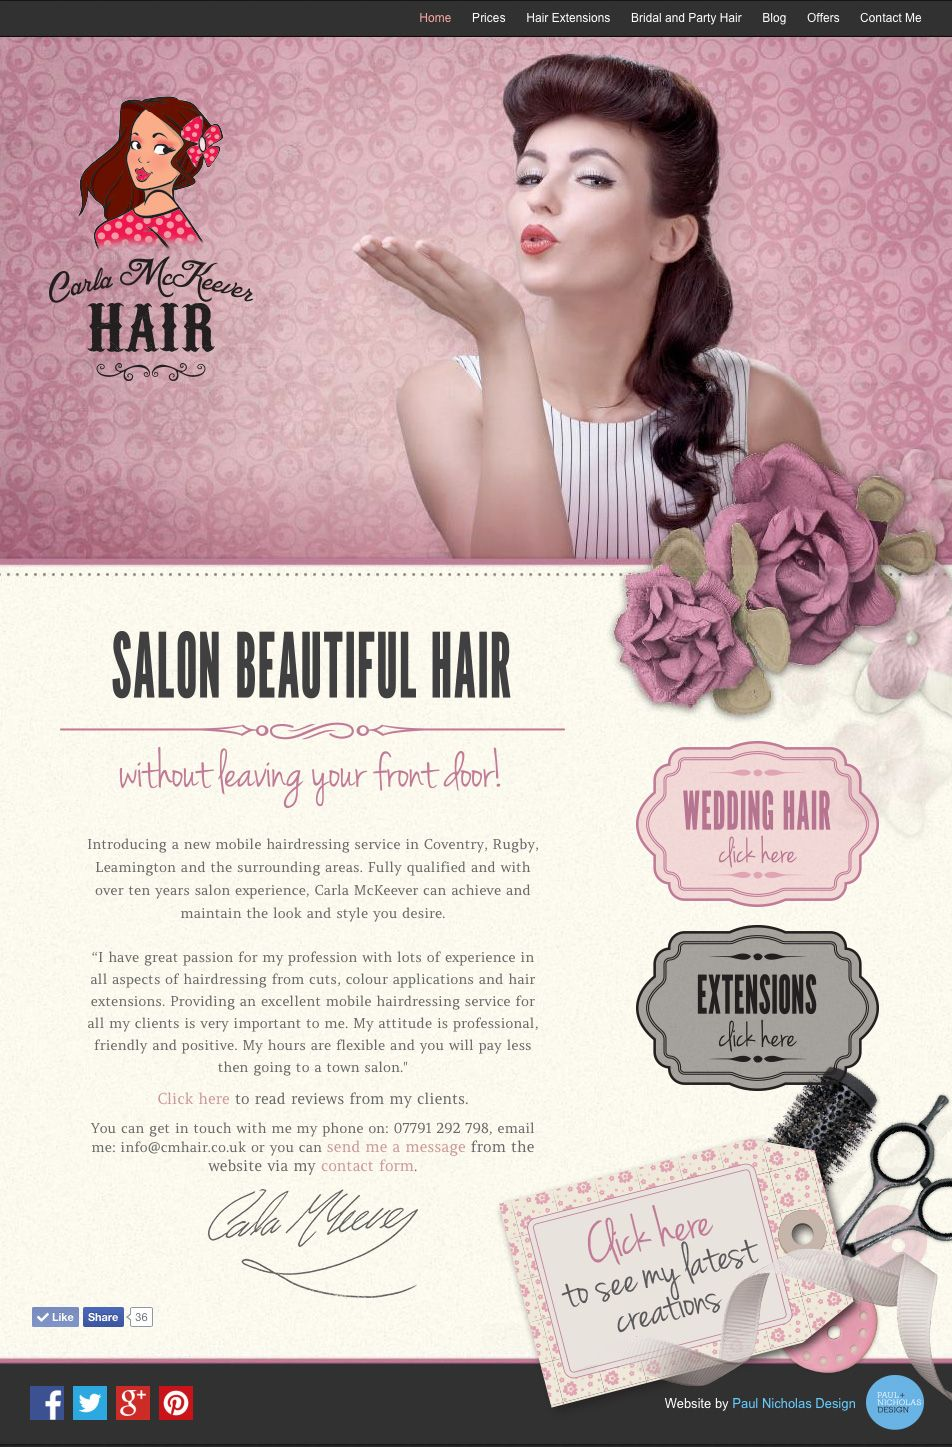 Home page pin up 50s style website design for mobile hairdresser home page pin up 50s style website design for mobile hairdresser carla mckeever pmusecretfo Gallery